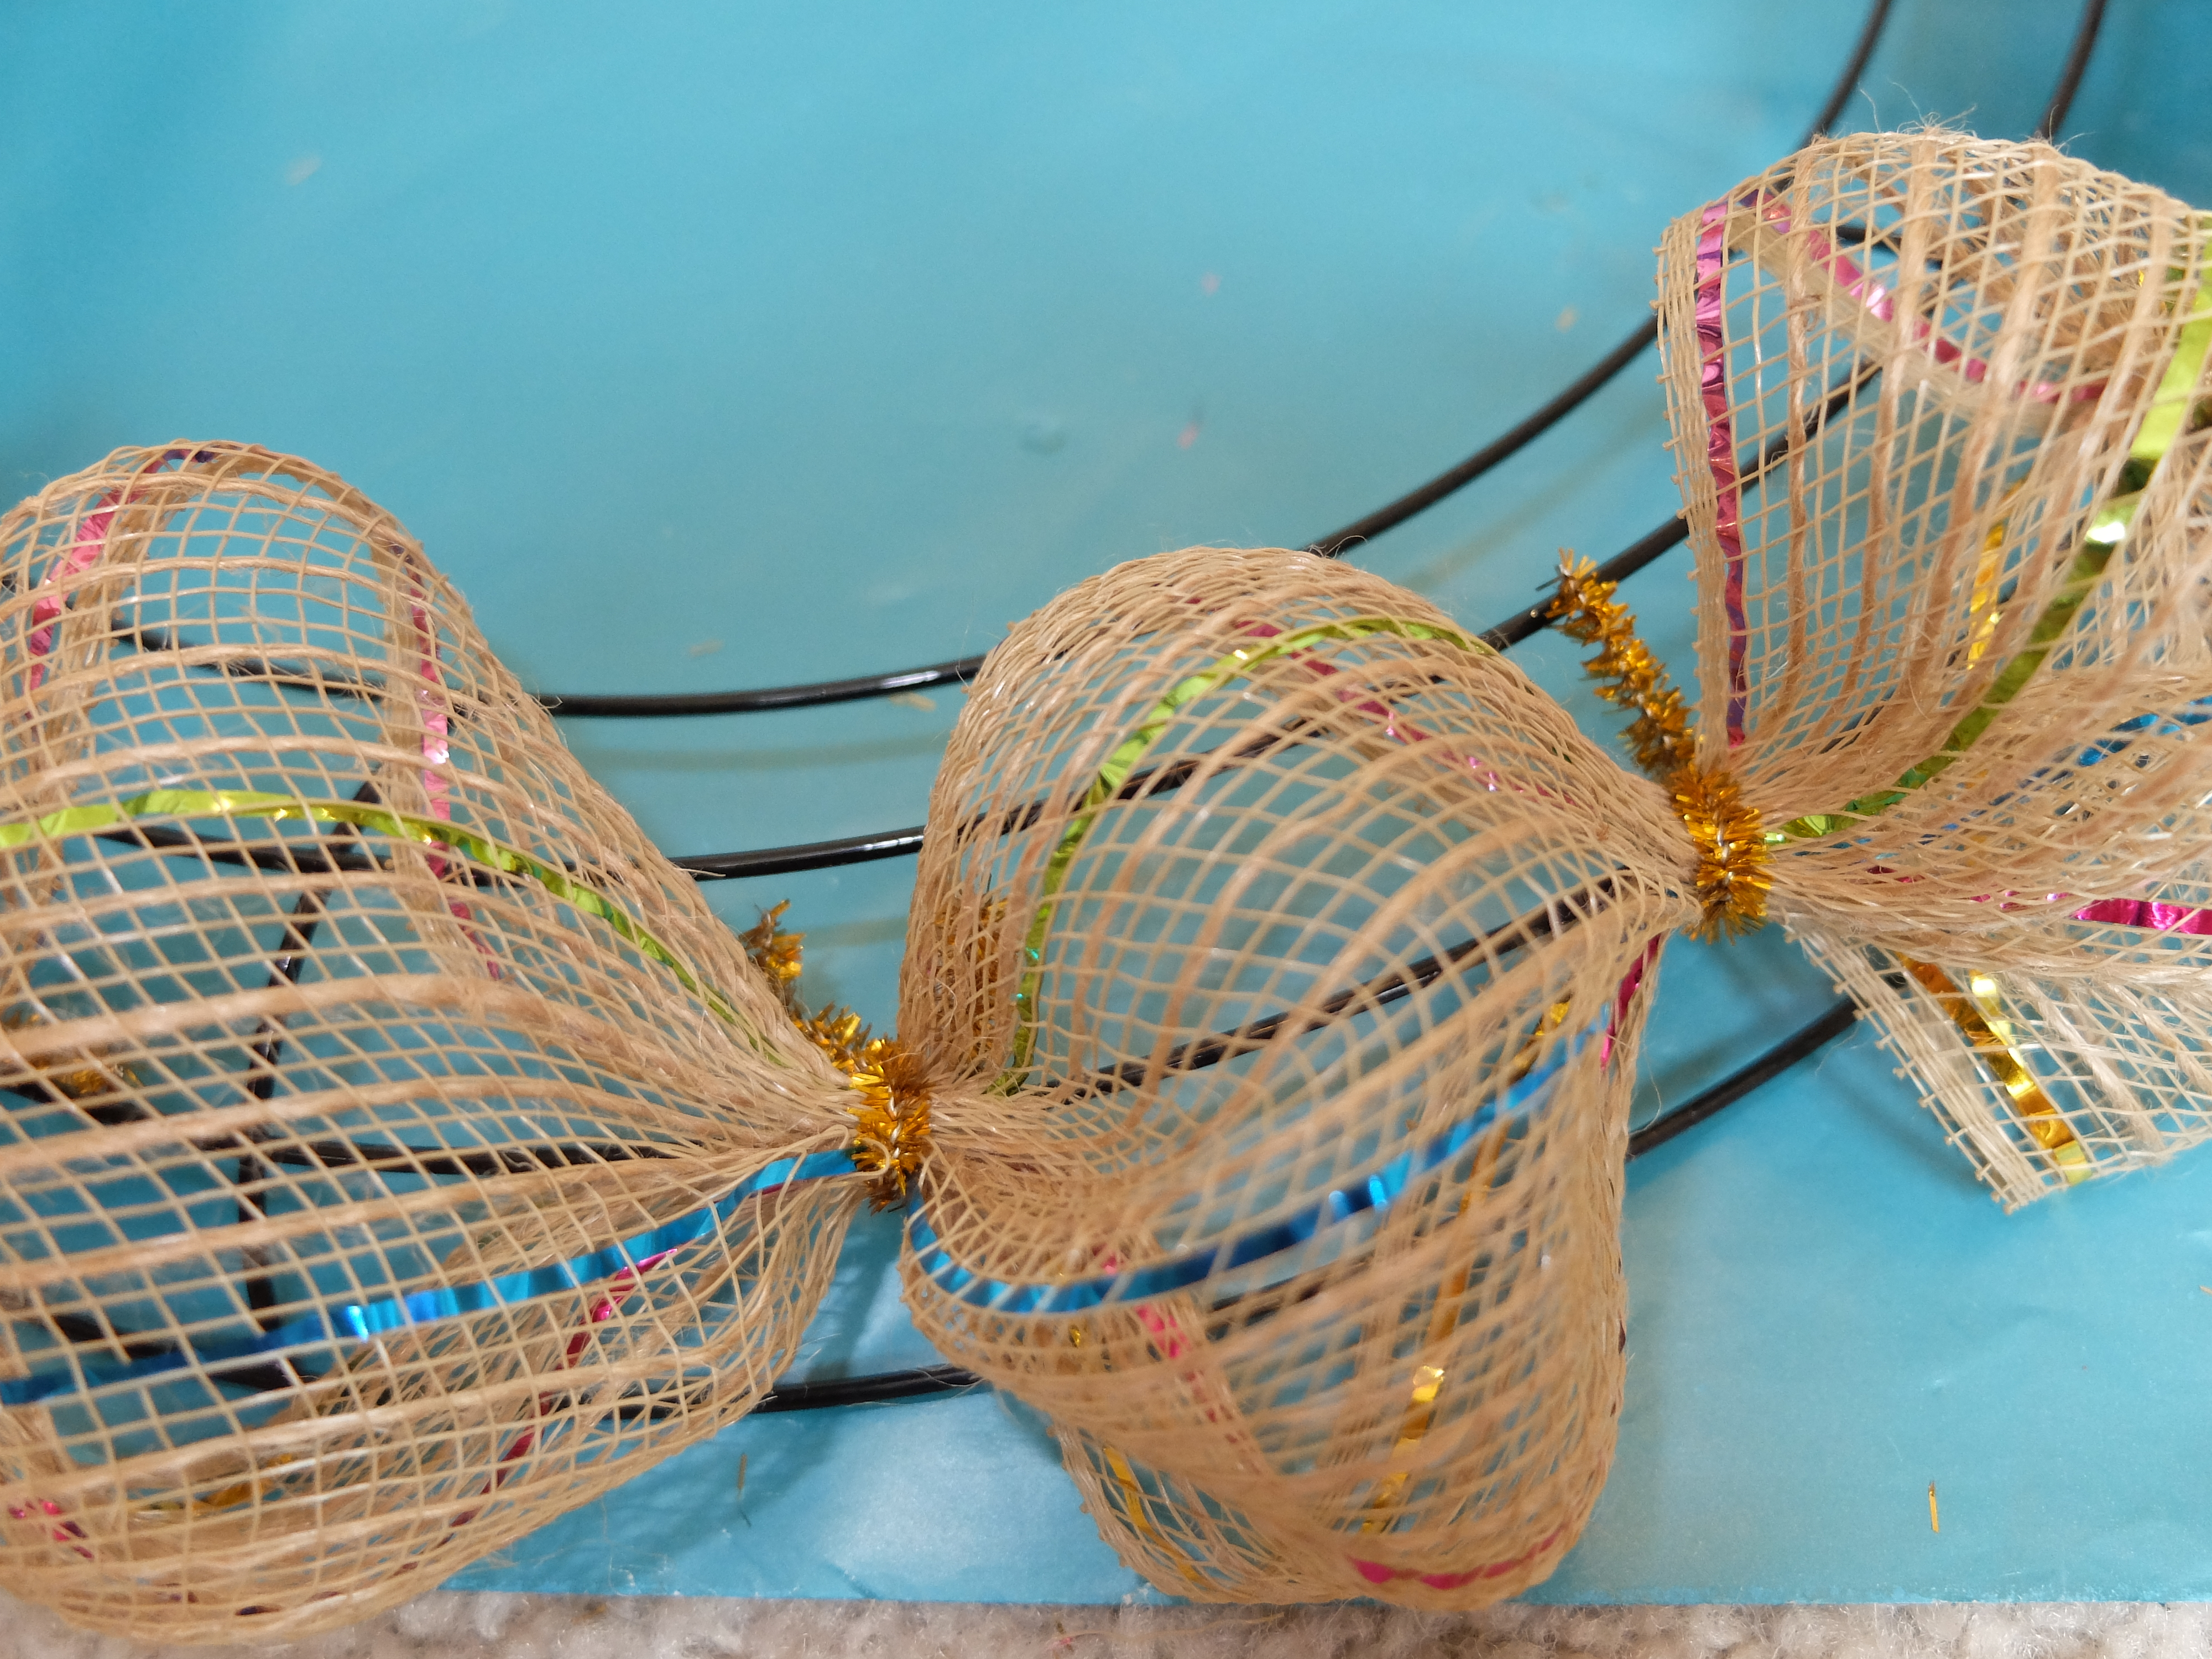 Easter mesh wreath diy from dollar tree finds - Easter Mesh Wreath Diy From Dollar Tree Finds